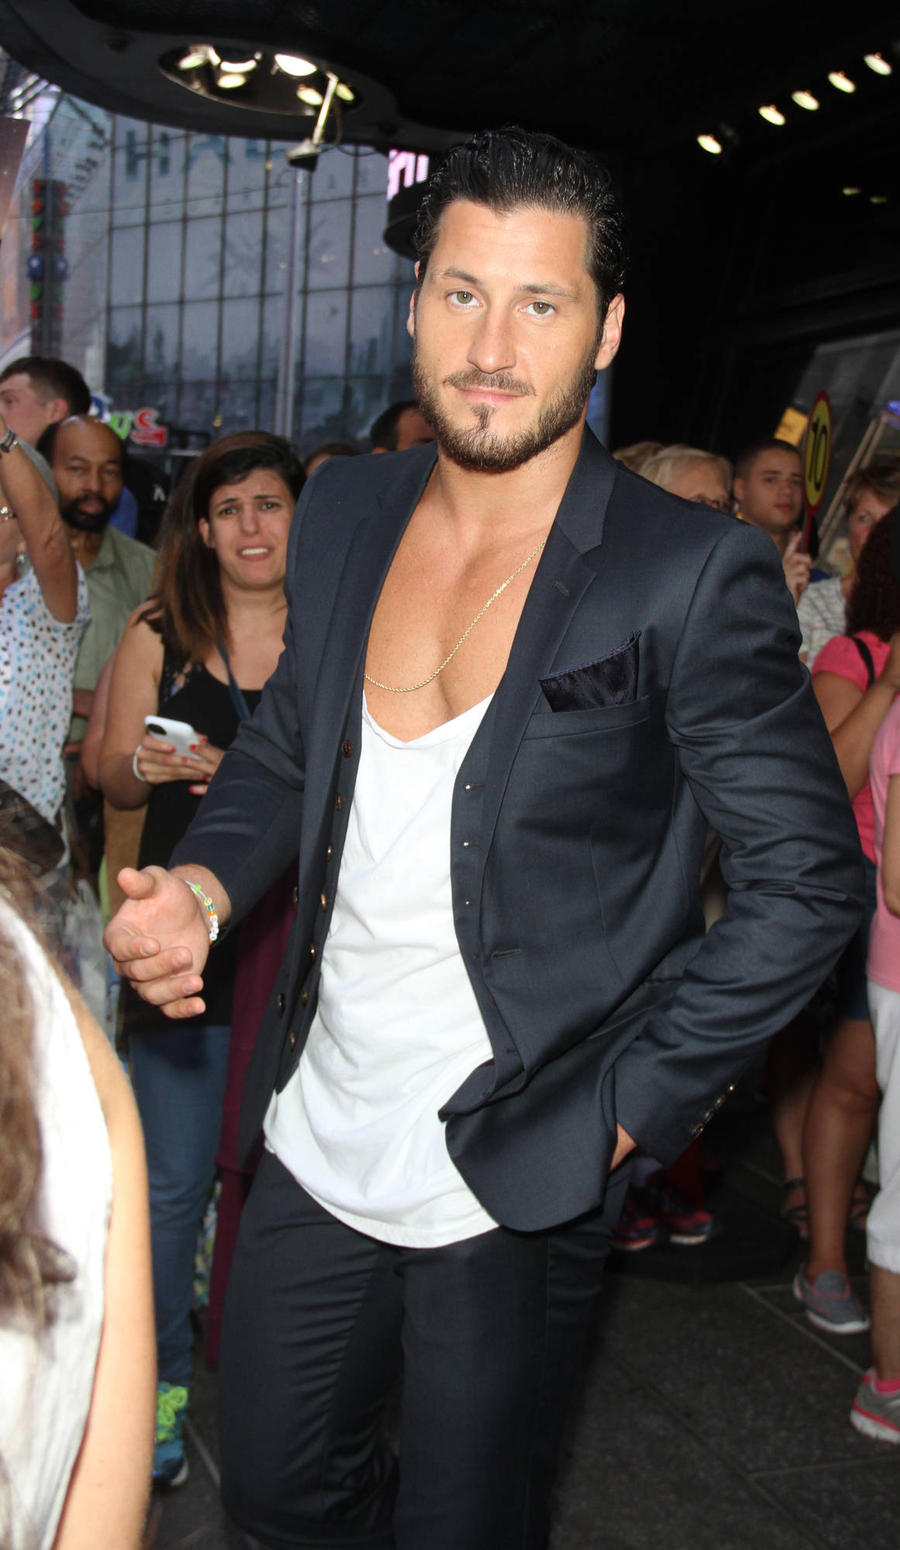 Val Chmerkovskiy Sued Over Photo